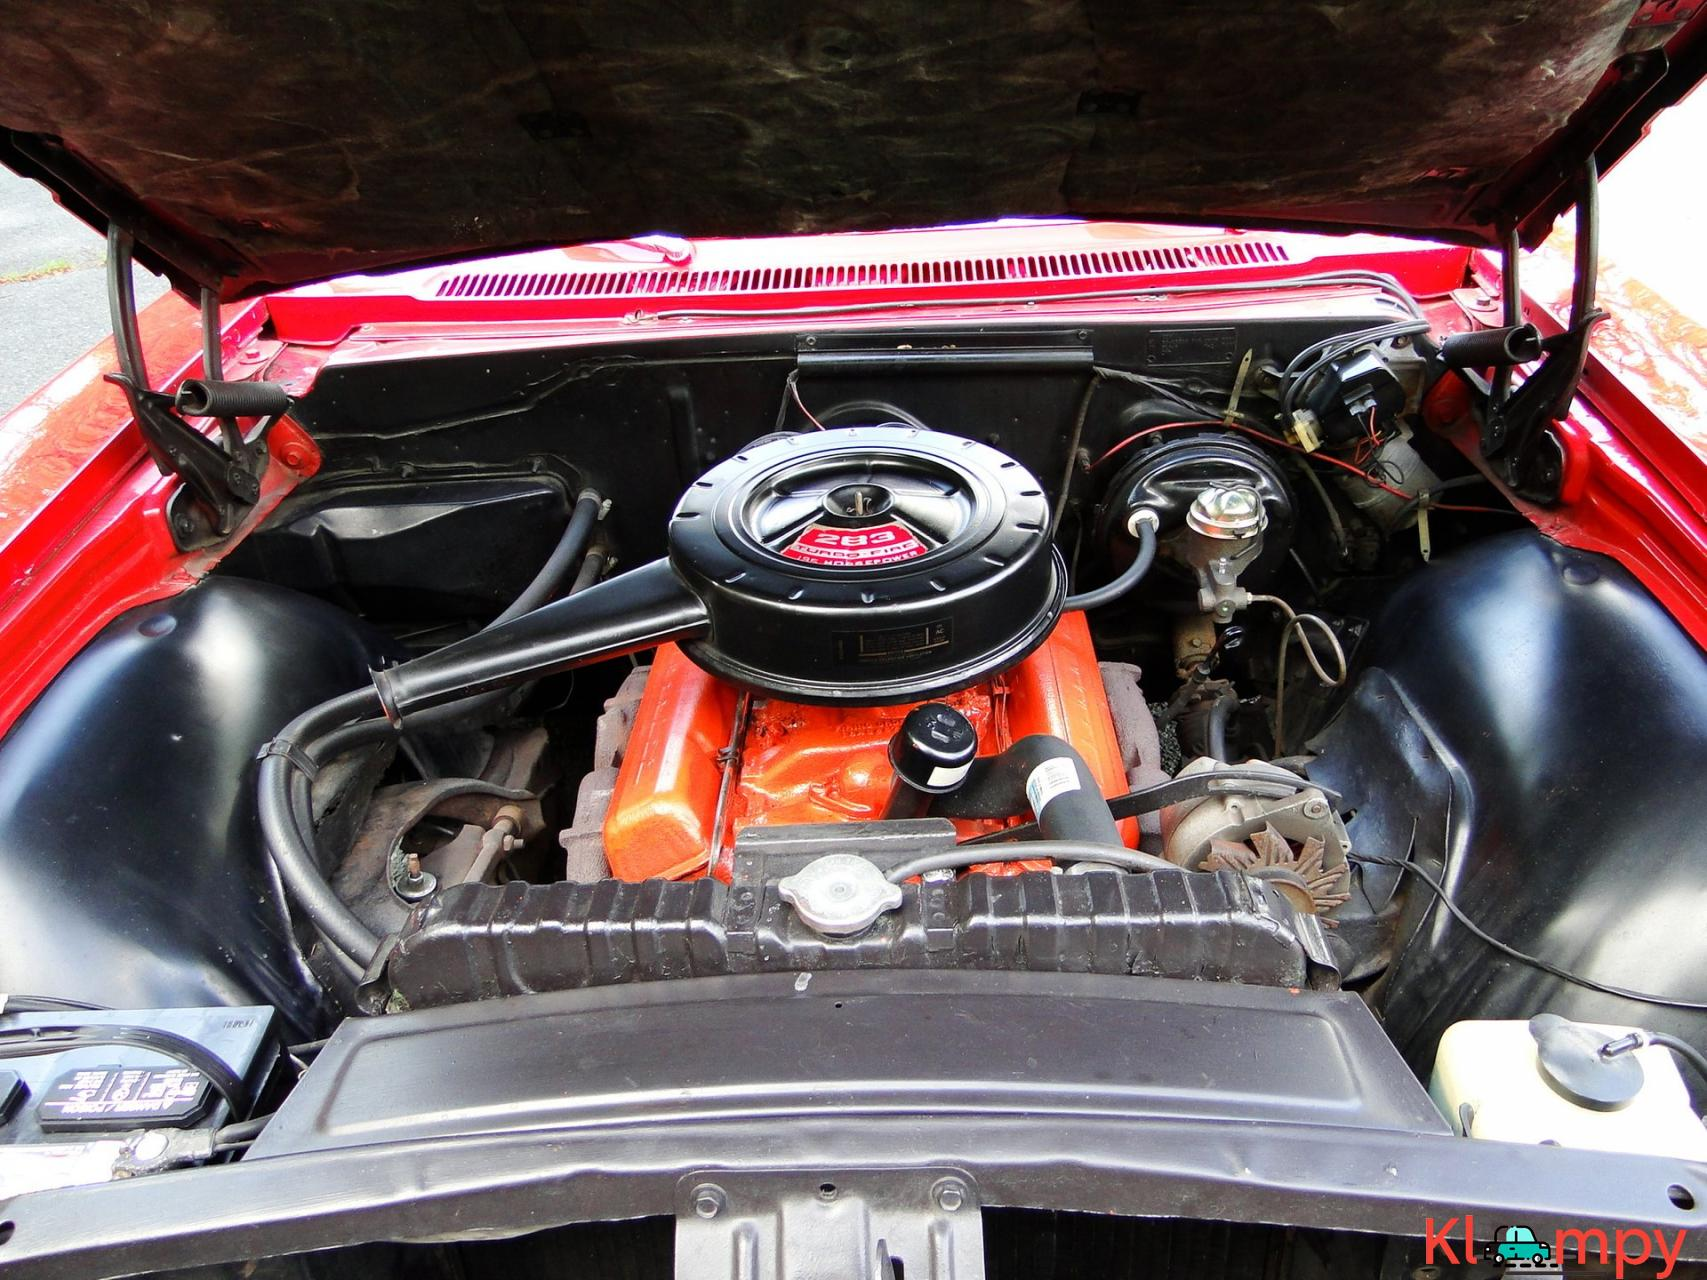 1966 Chevrolet Impala SS Convertible Regal Red V8 - 19/23